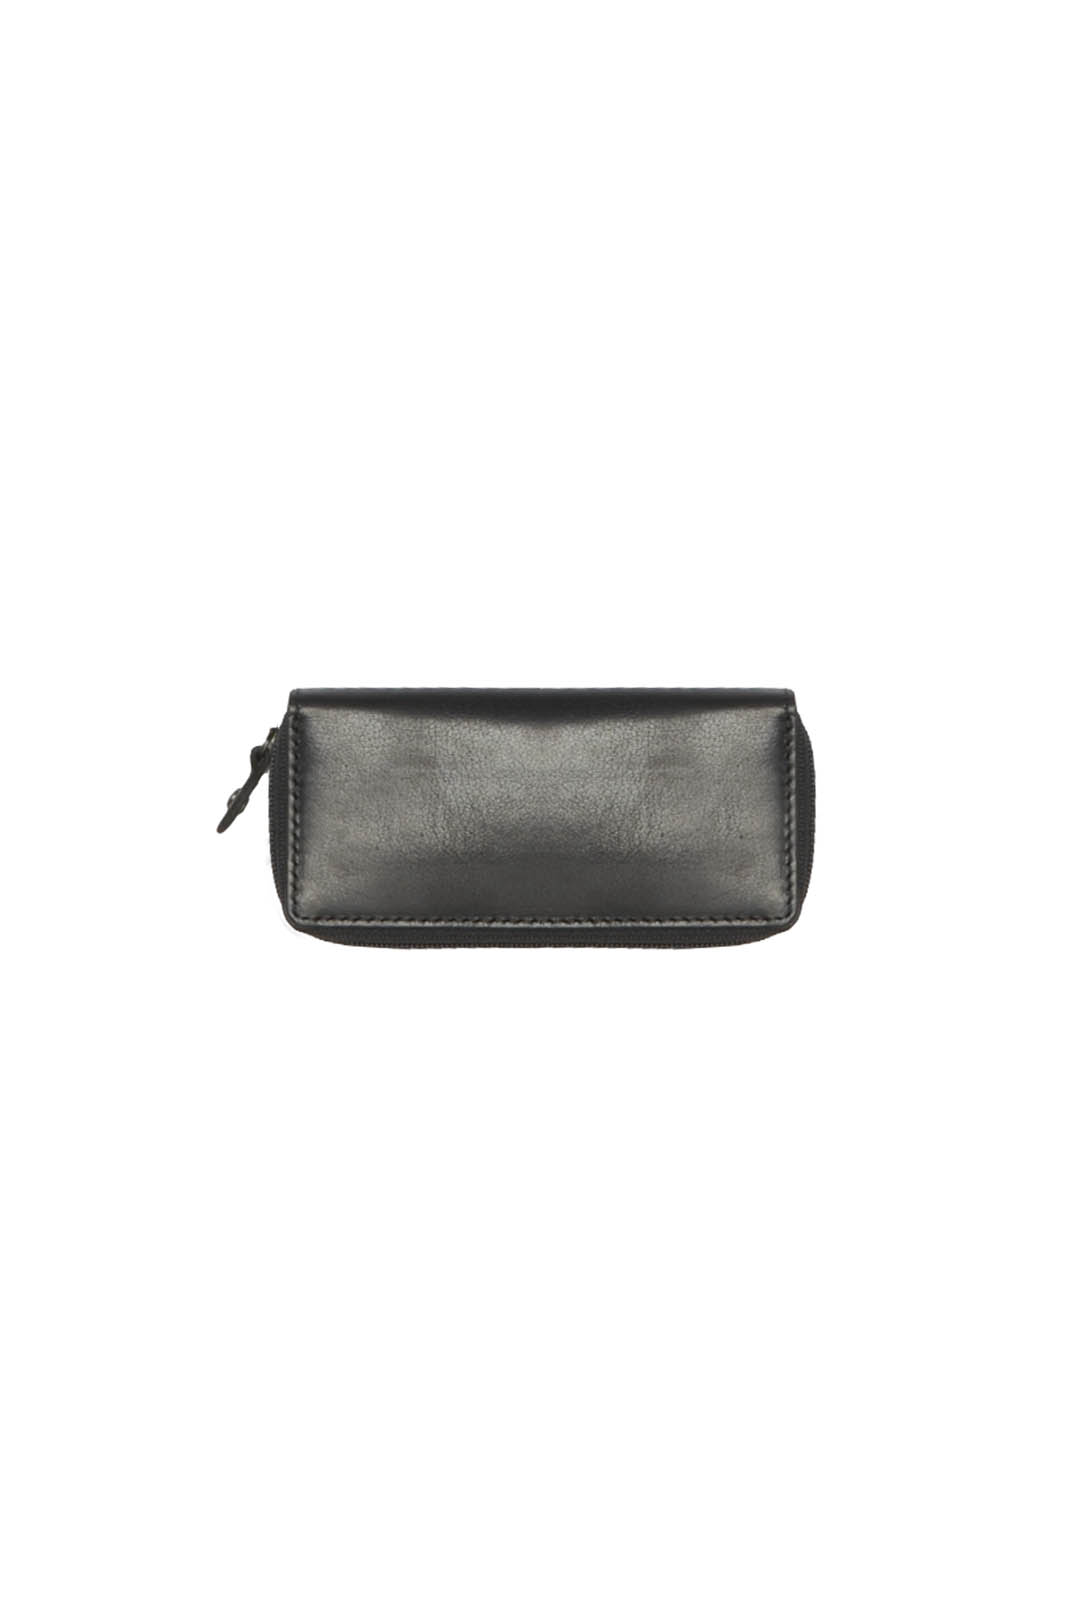 Zipped leather key pouch                 2